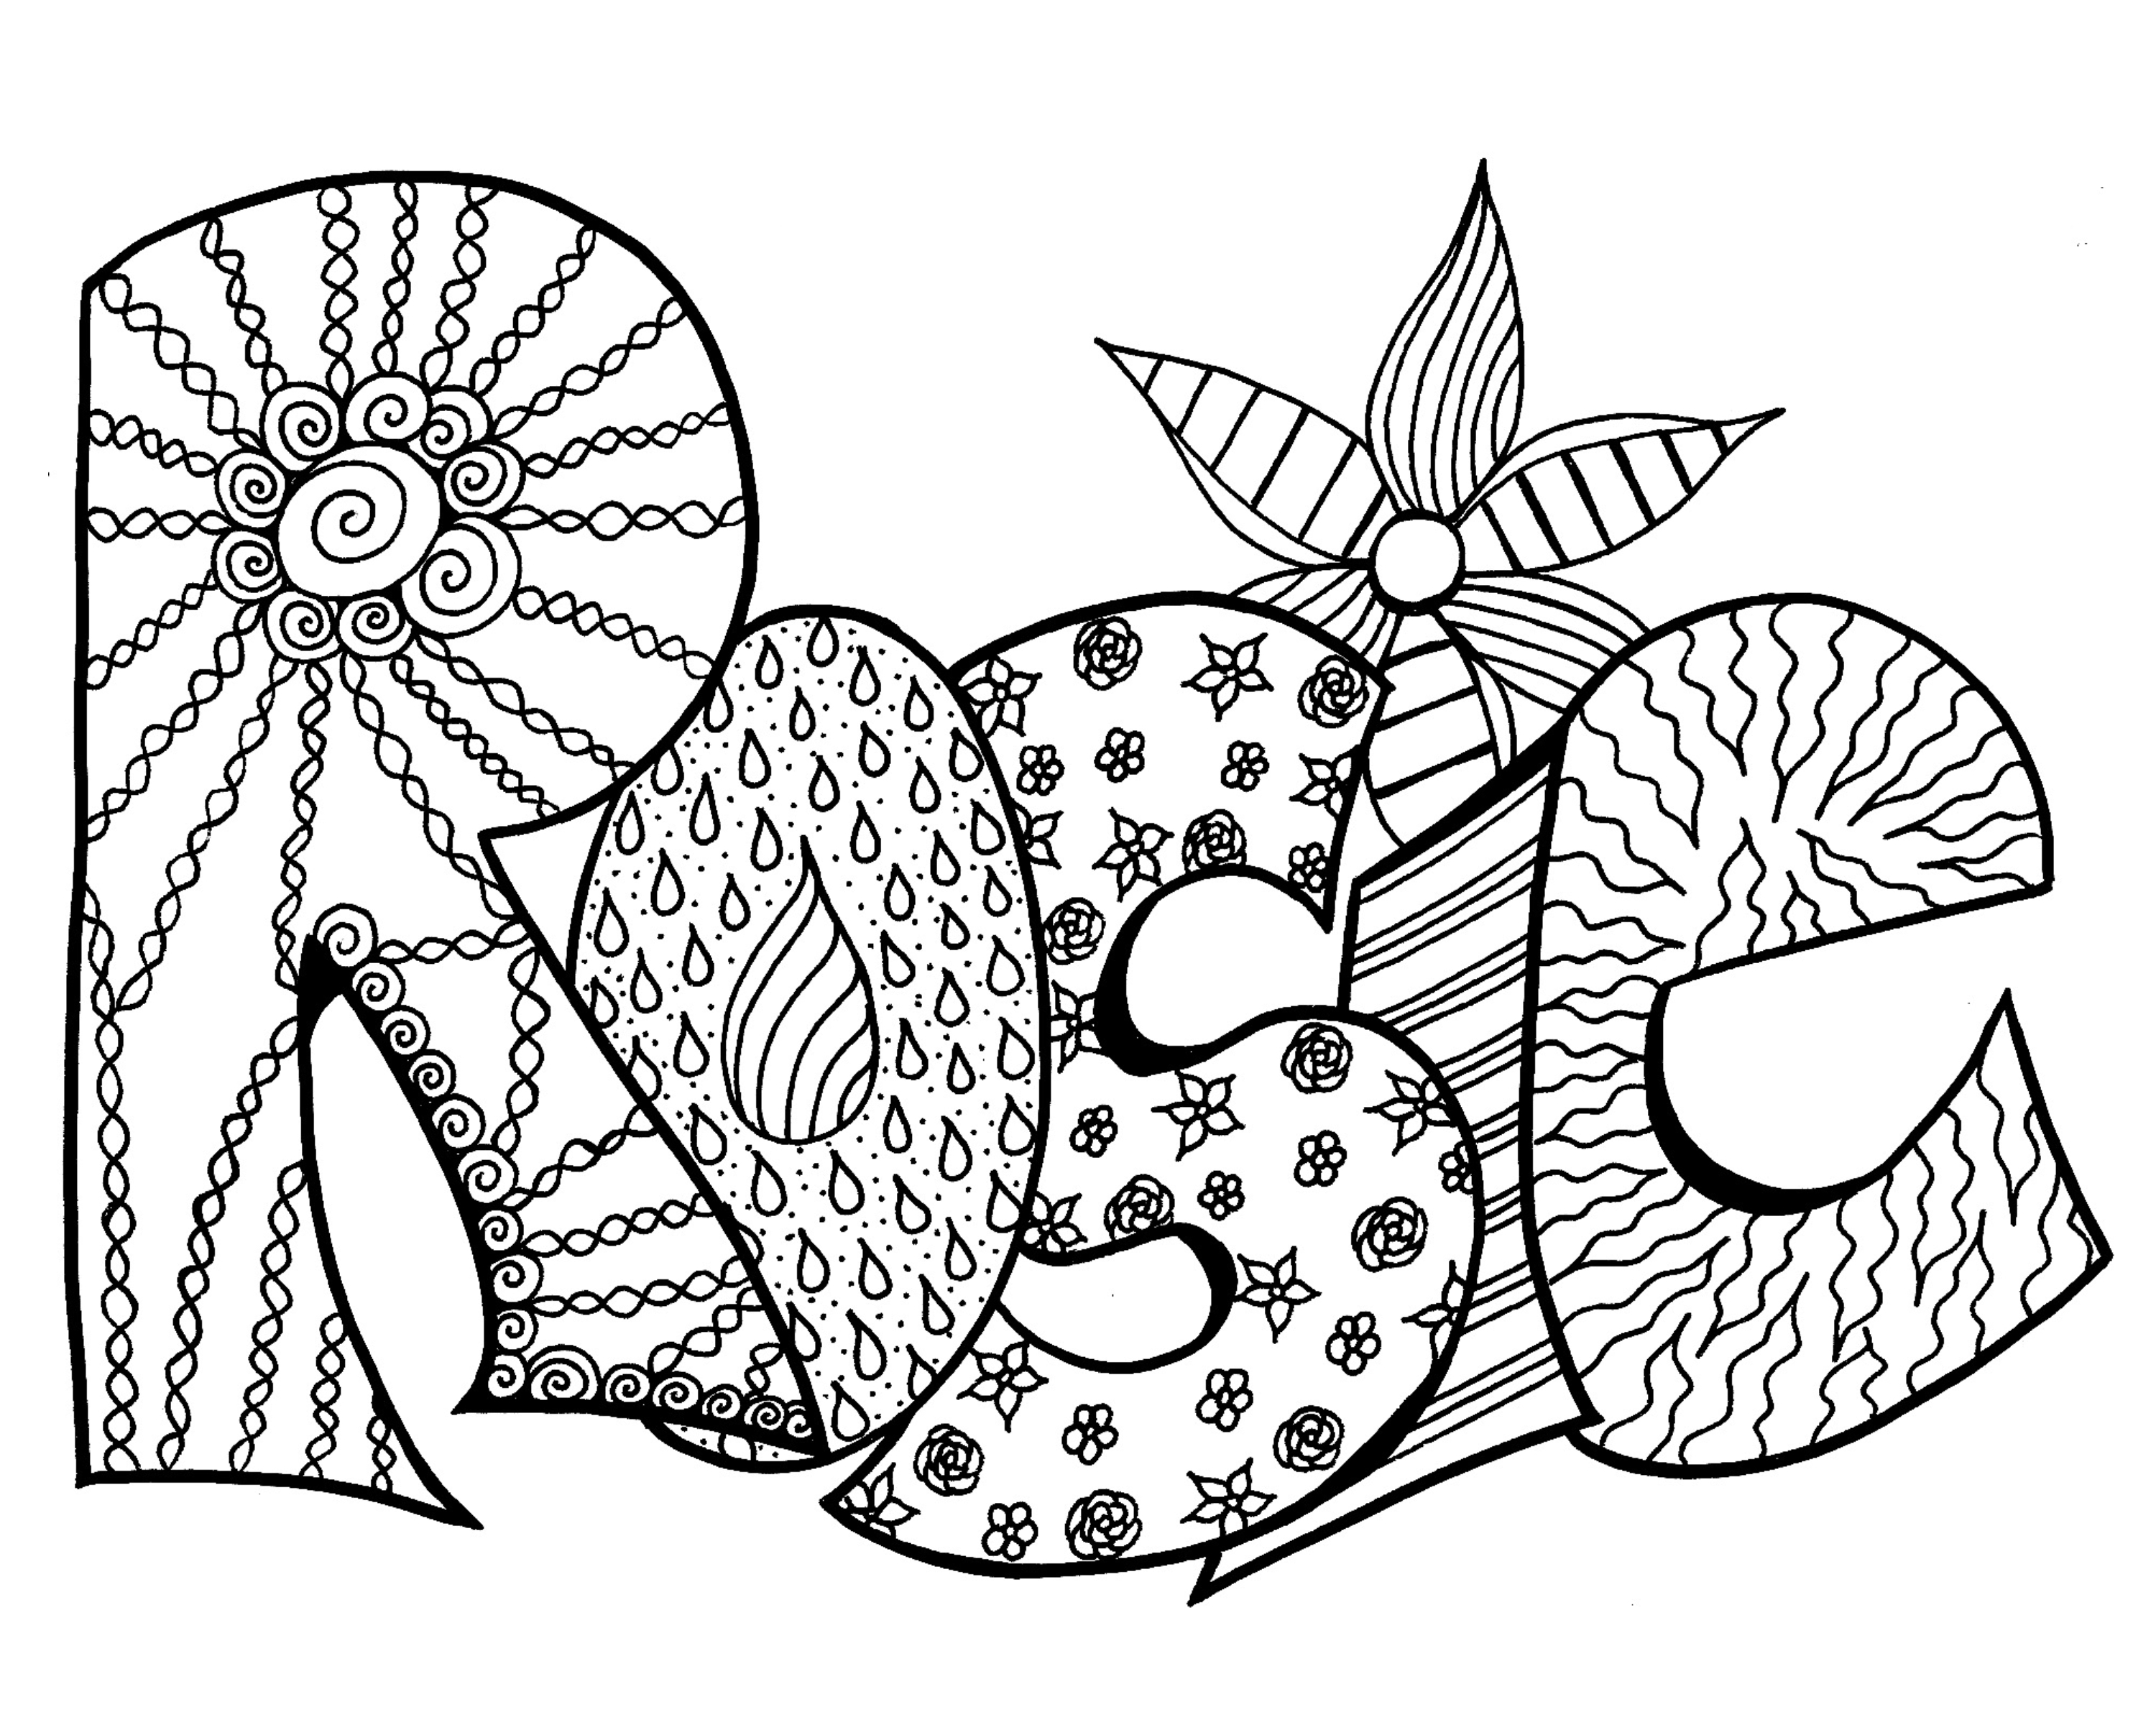 3000x2400 Custom Coloring Pages At From Photos Glum Me In Free Auto Market